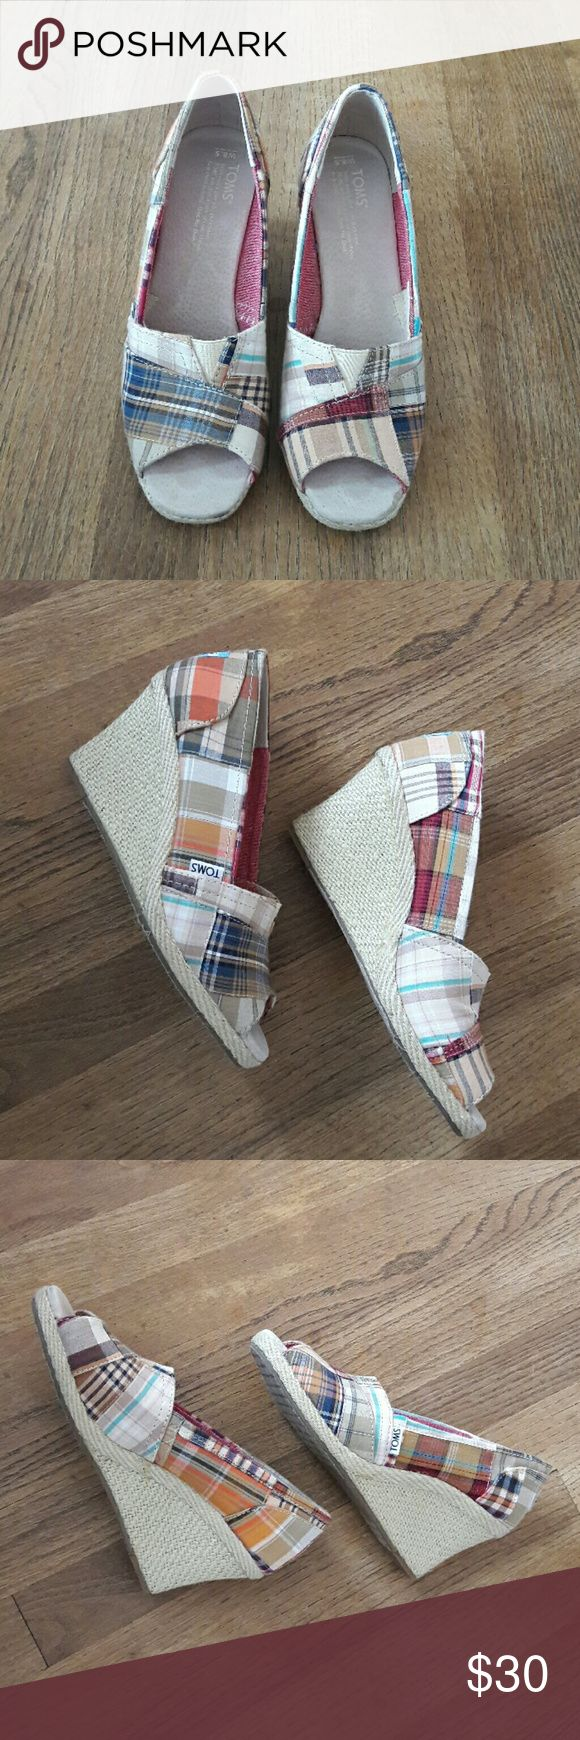 """TOMS Madras wedge espadrilles Perfect for Spring and Summer wear! Comfortable and classic with a 3"""" heel. Gently worn a handful of times with no scuffs Size is a standard 8.5 - the W stands for """"women's"""". TOMS Shoes Espadrilles"""